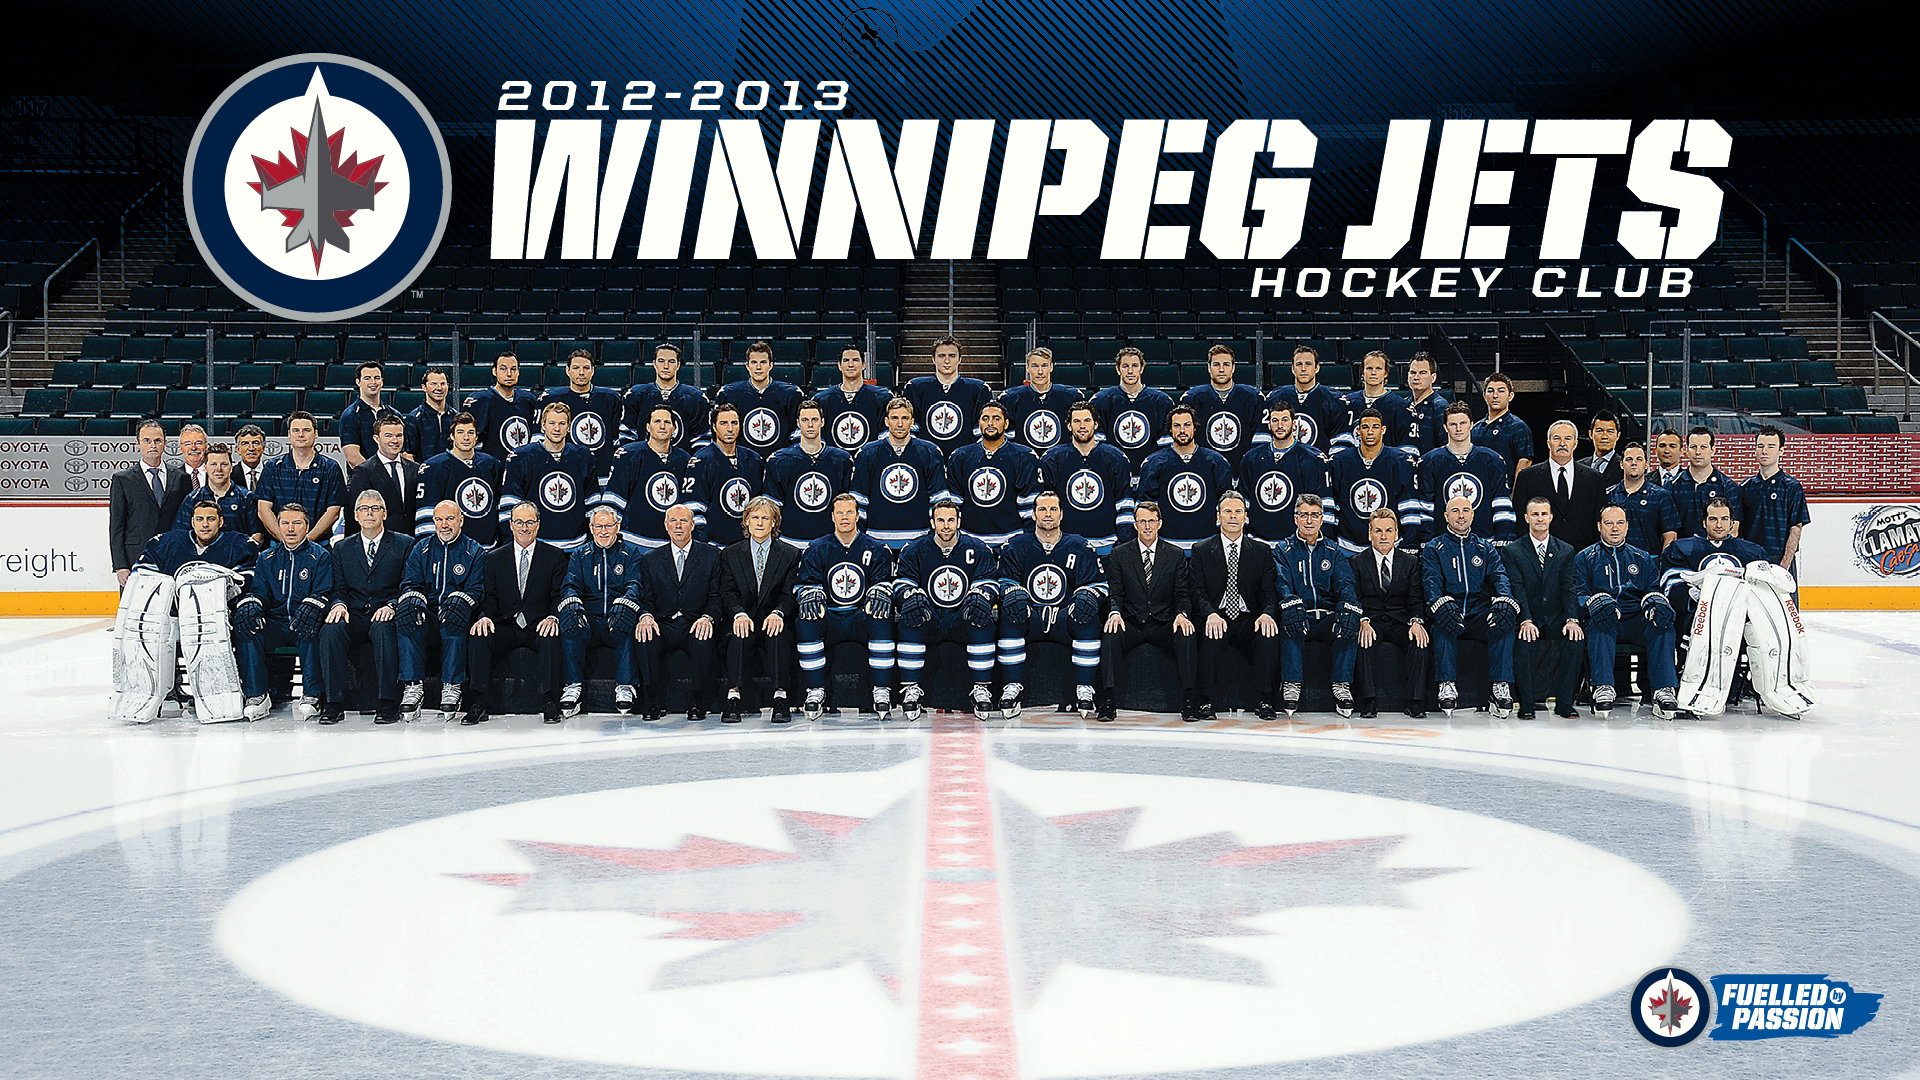 Winnipeg Jets   Jets Desktop Wallpapers   Winnipeg Jets   Multimedia 1920x1080